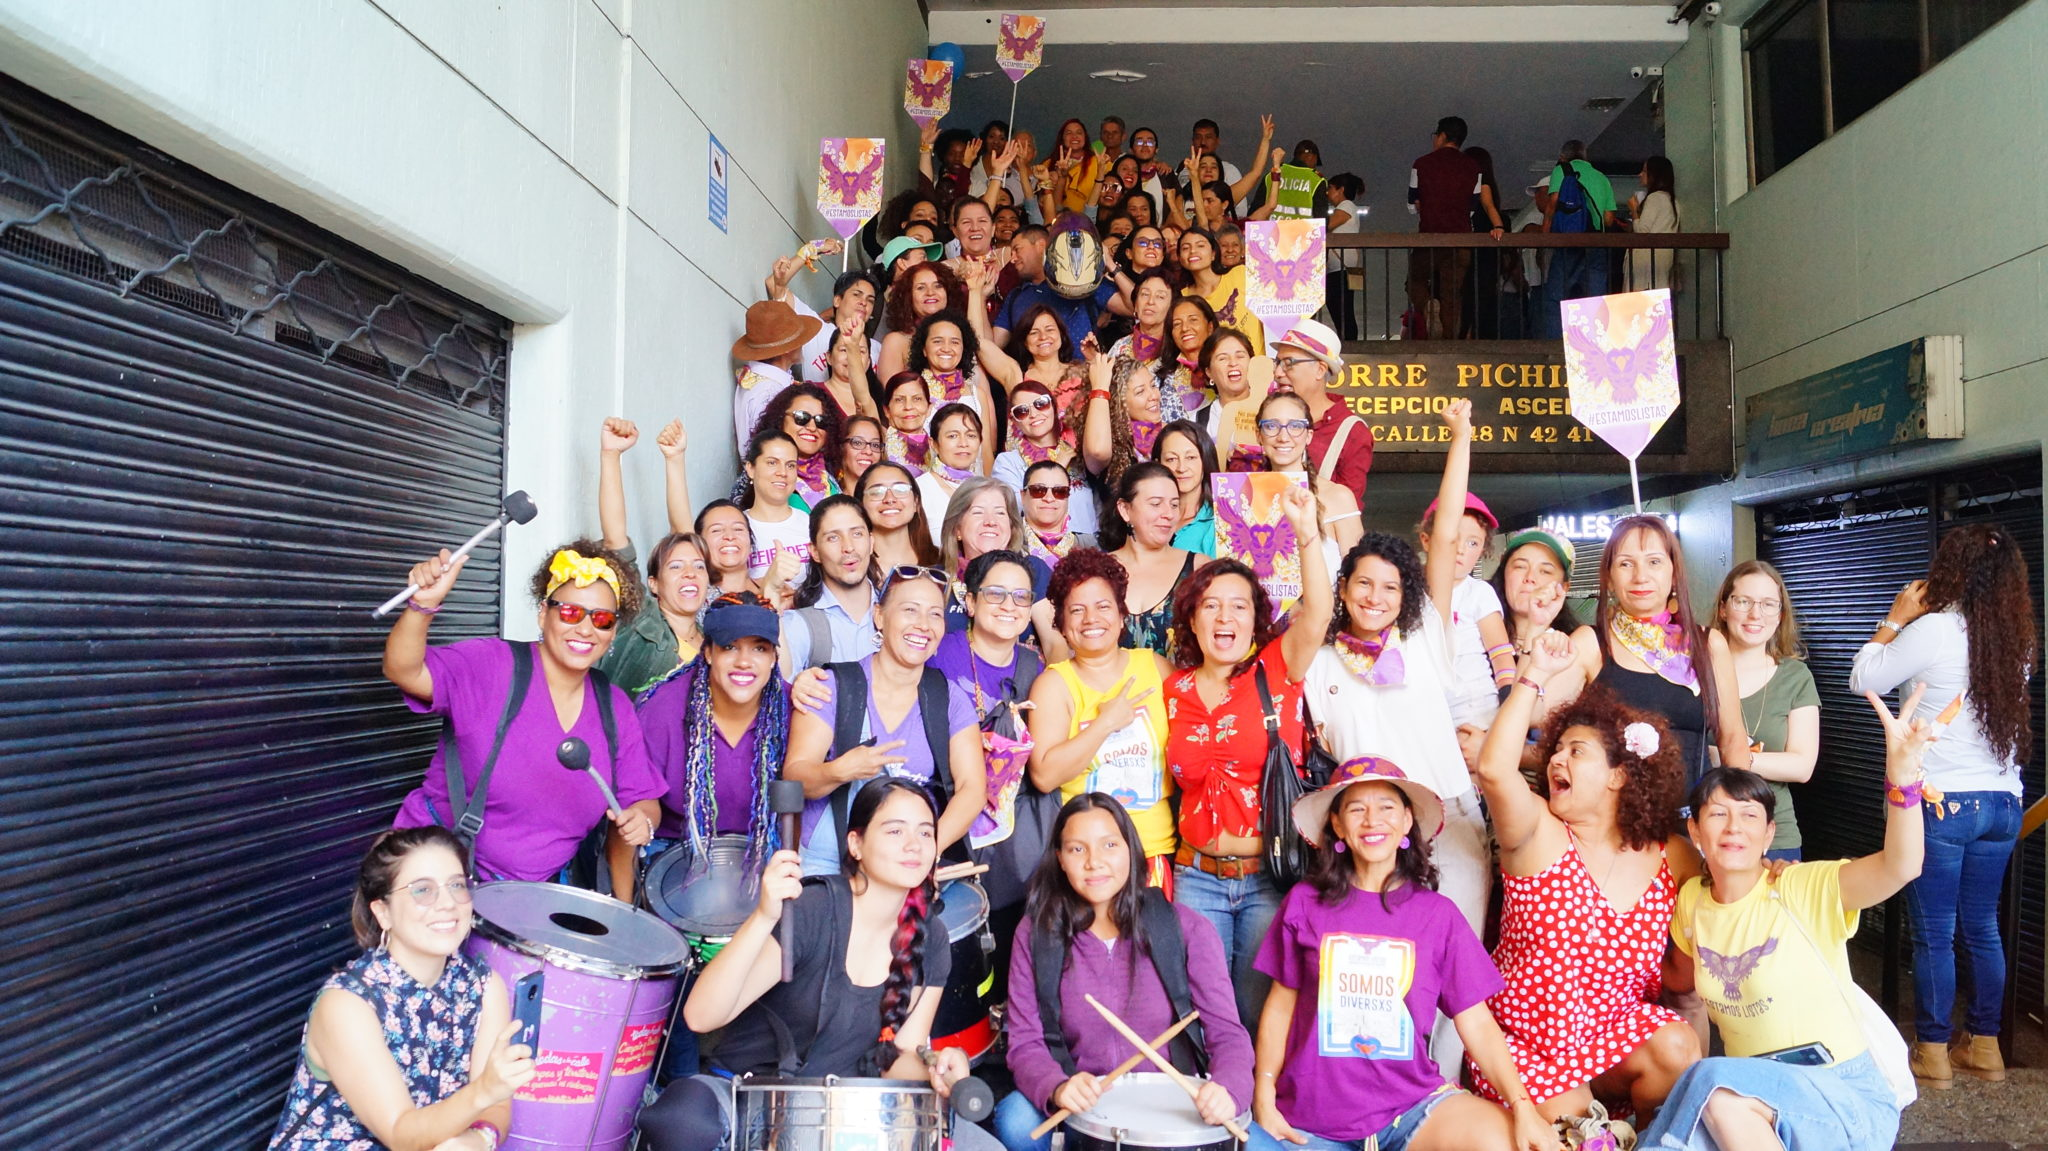 Medellín's women-centered political movement is ready for city council